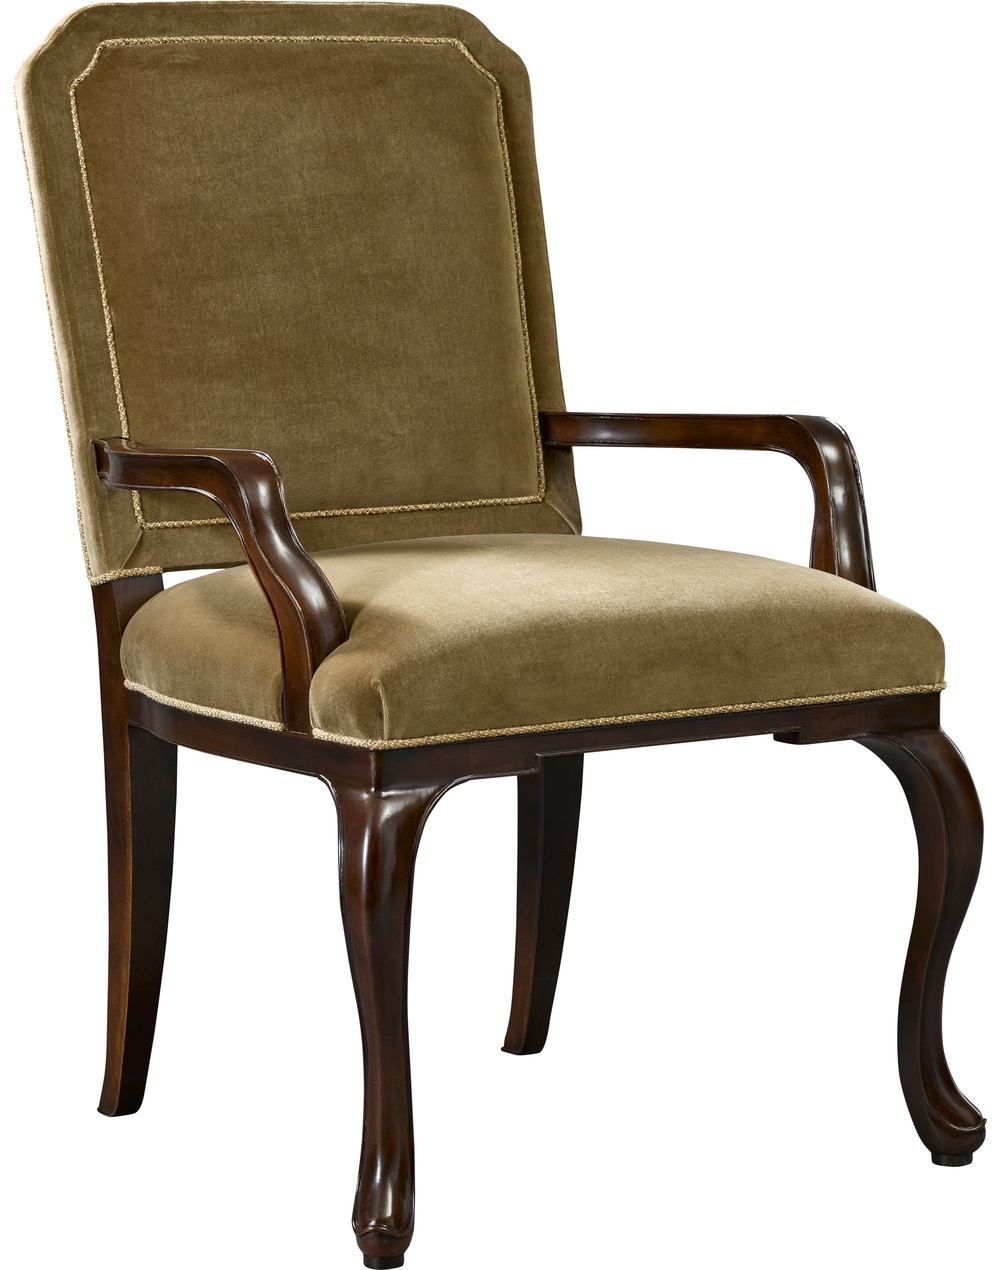 Hickory Chair - Regent Arm Chair